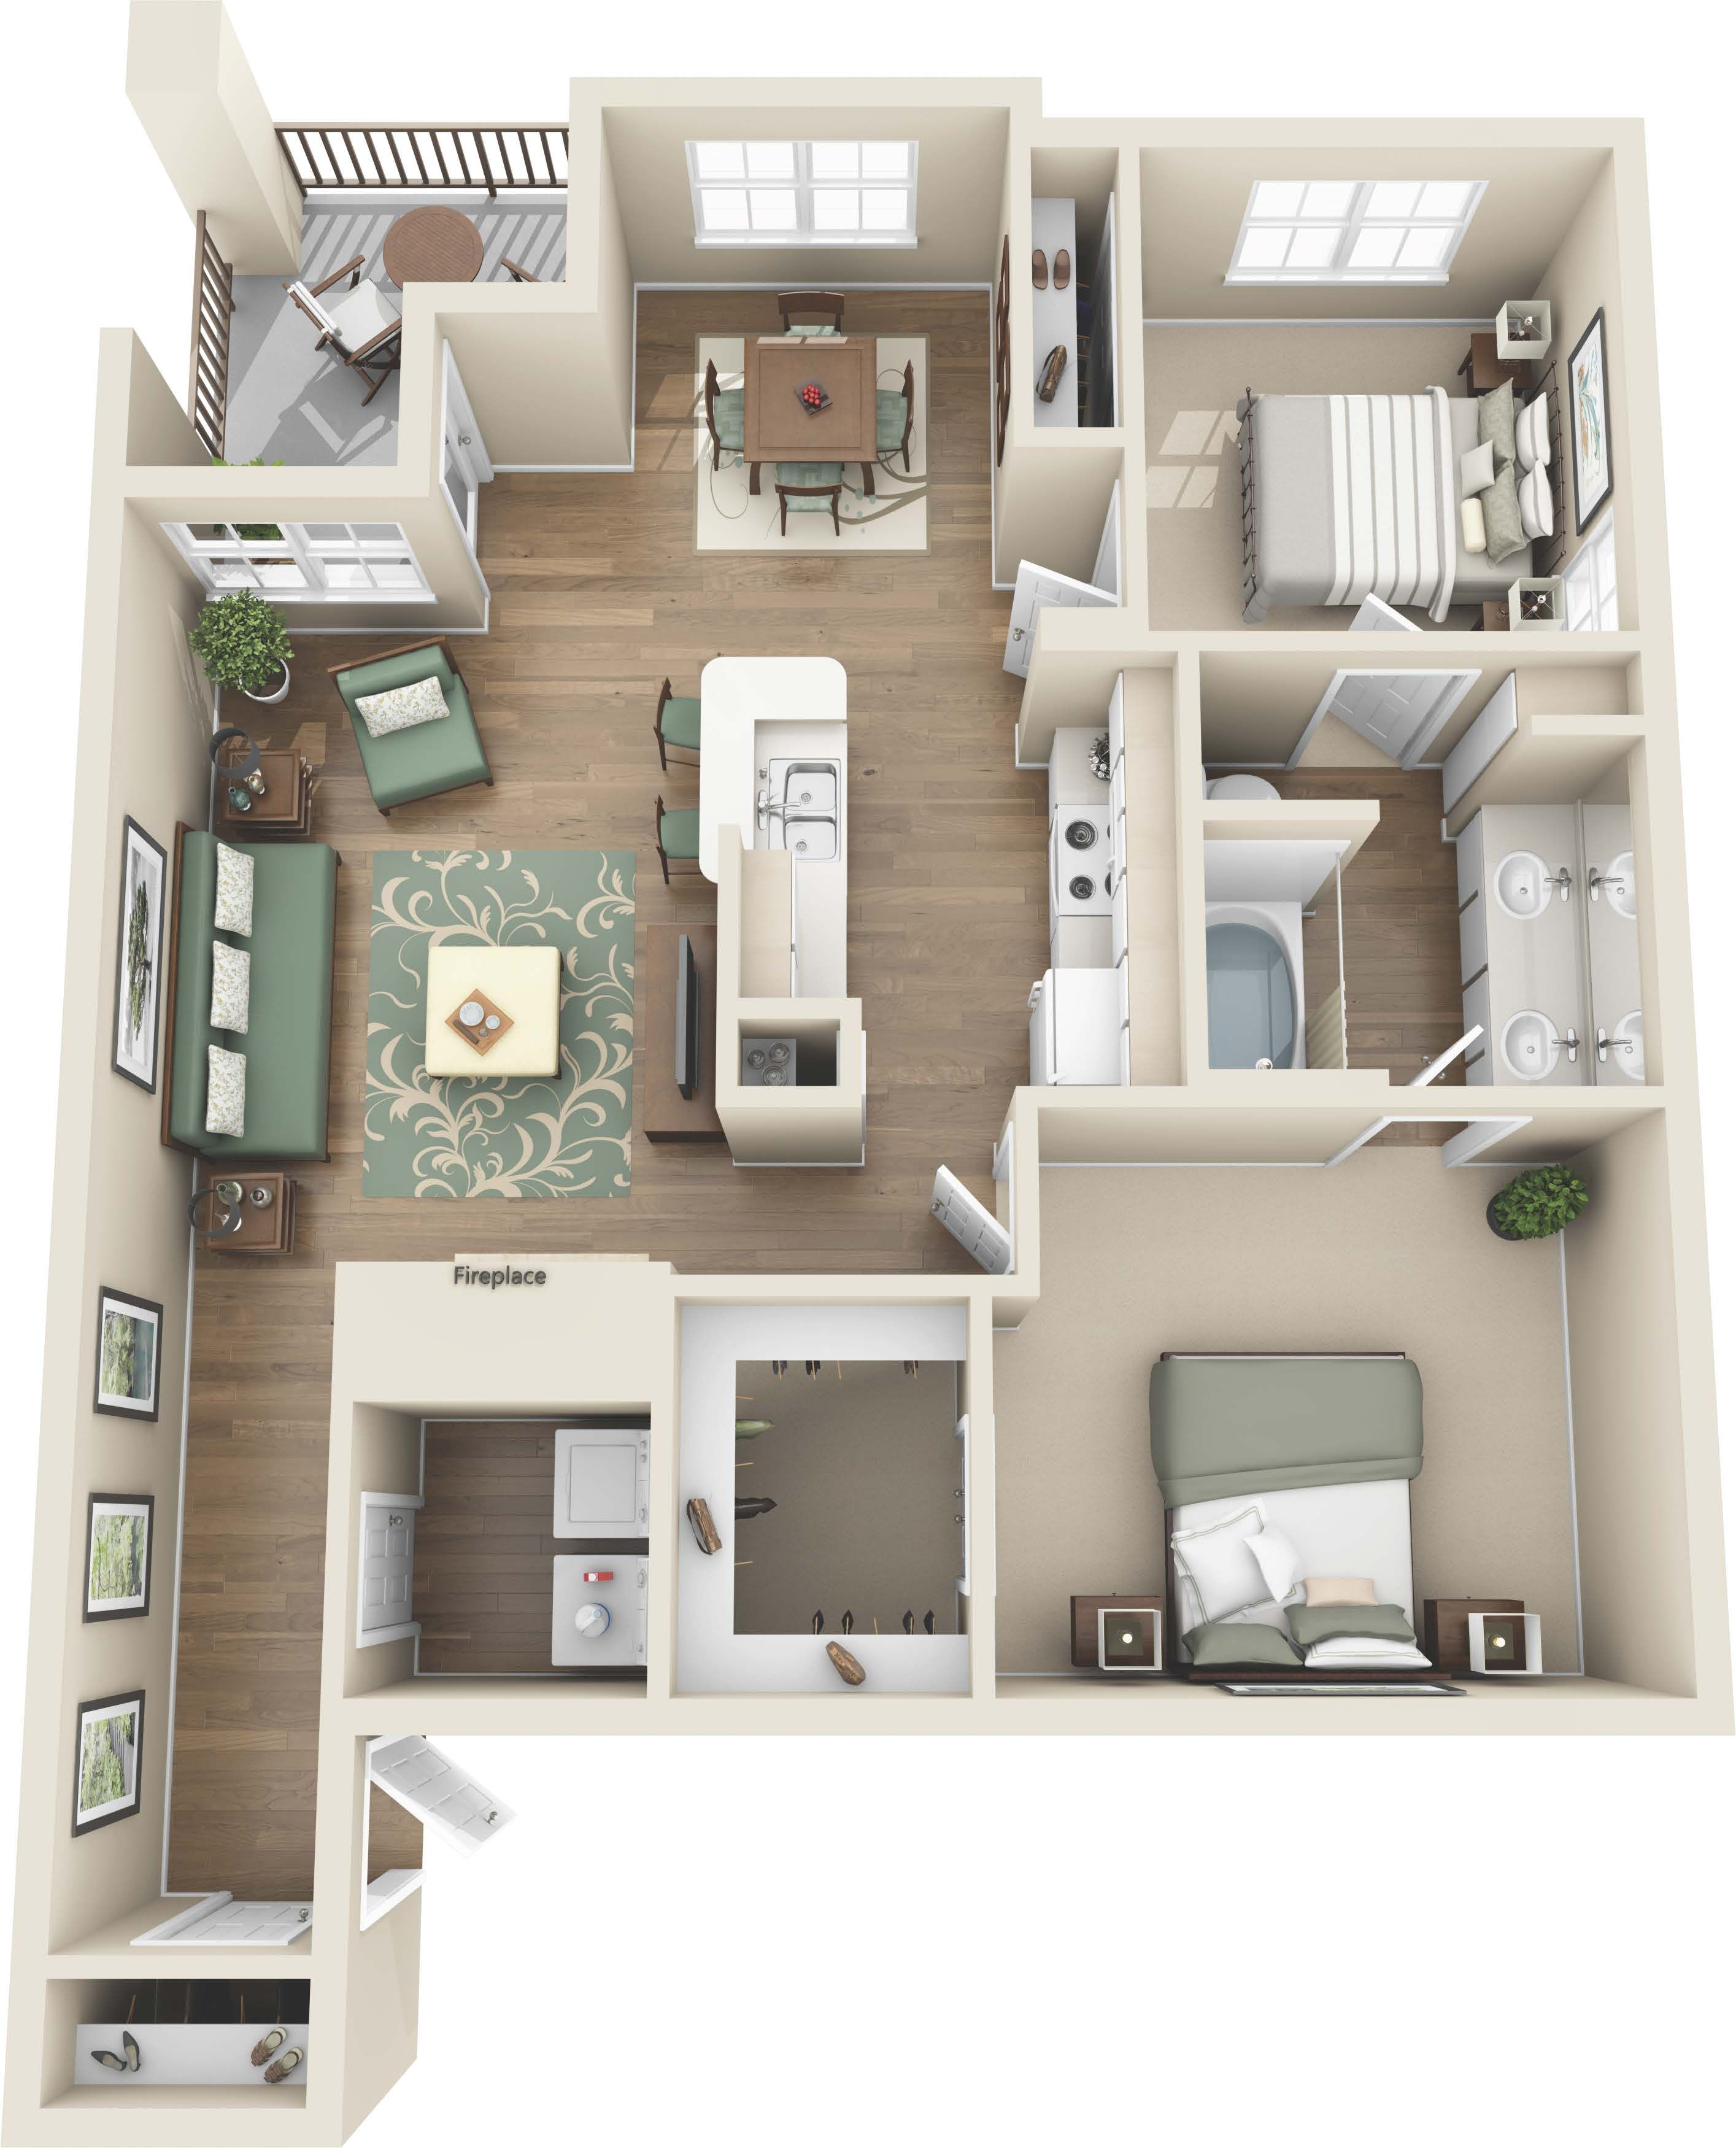 Luxury 1 And 2 Bedroom Colorado Springs Co Apartments Coloradosprings Colorado Apartment Stead Apartment Layout Apartment Floor Plans Luxury Apartments